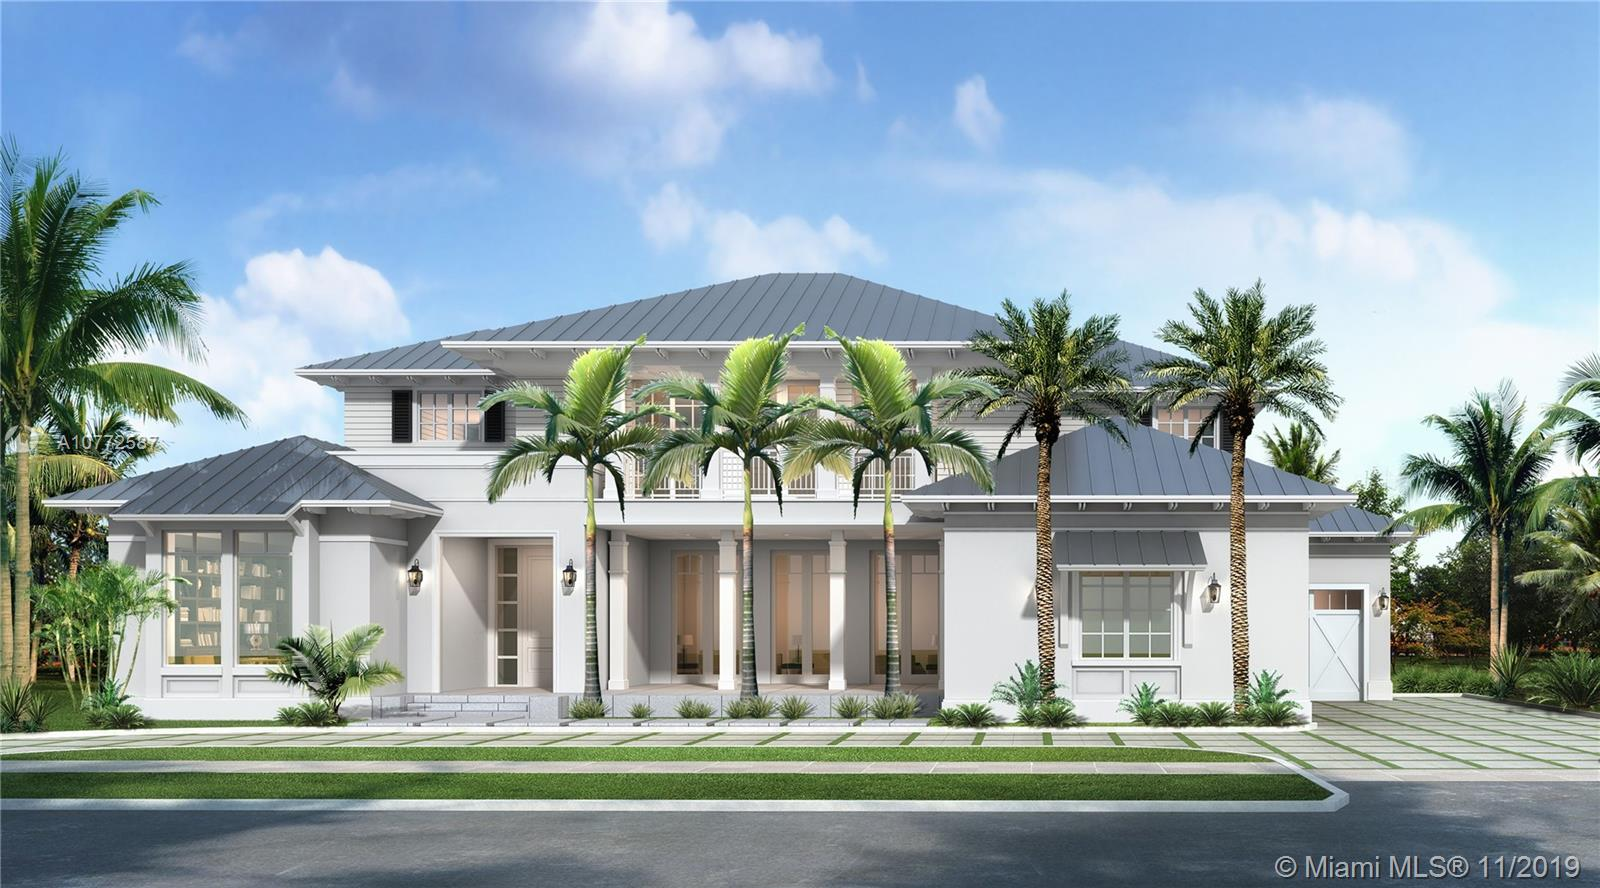 Search All Miami Houses For Sale